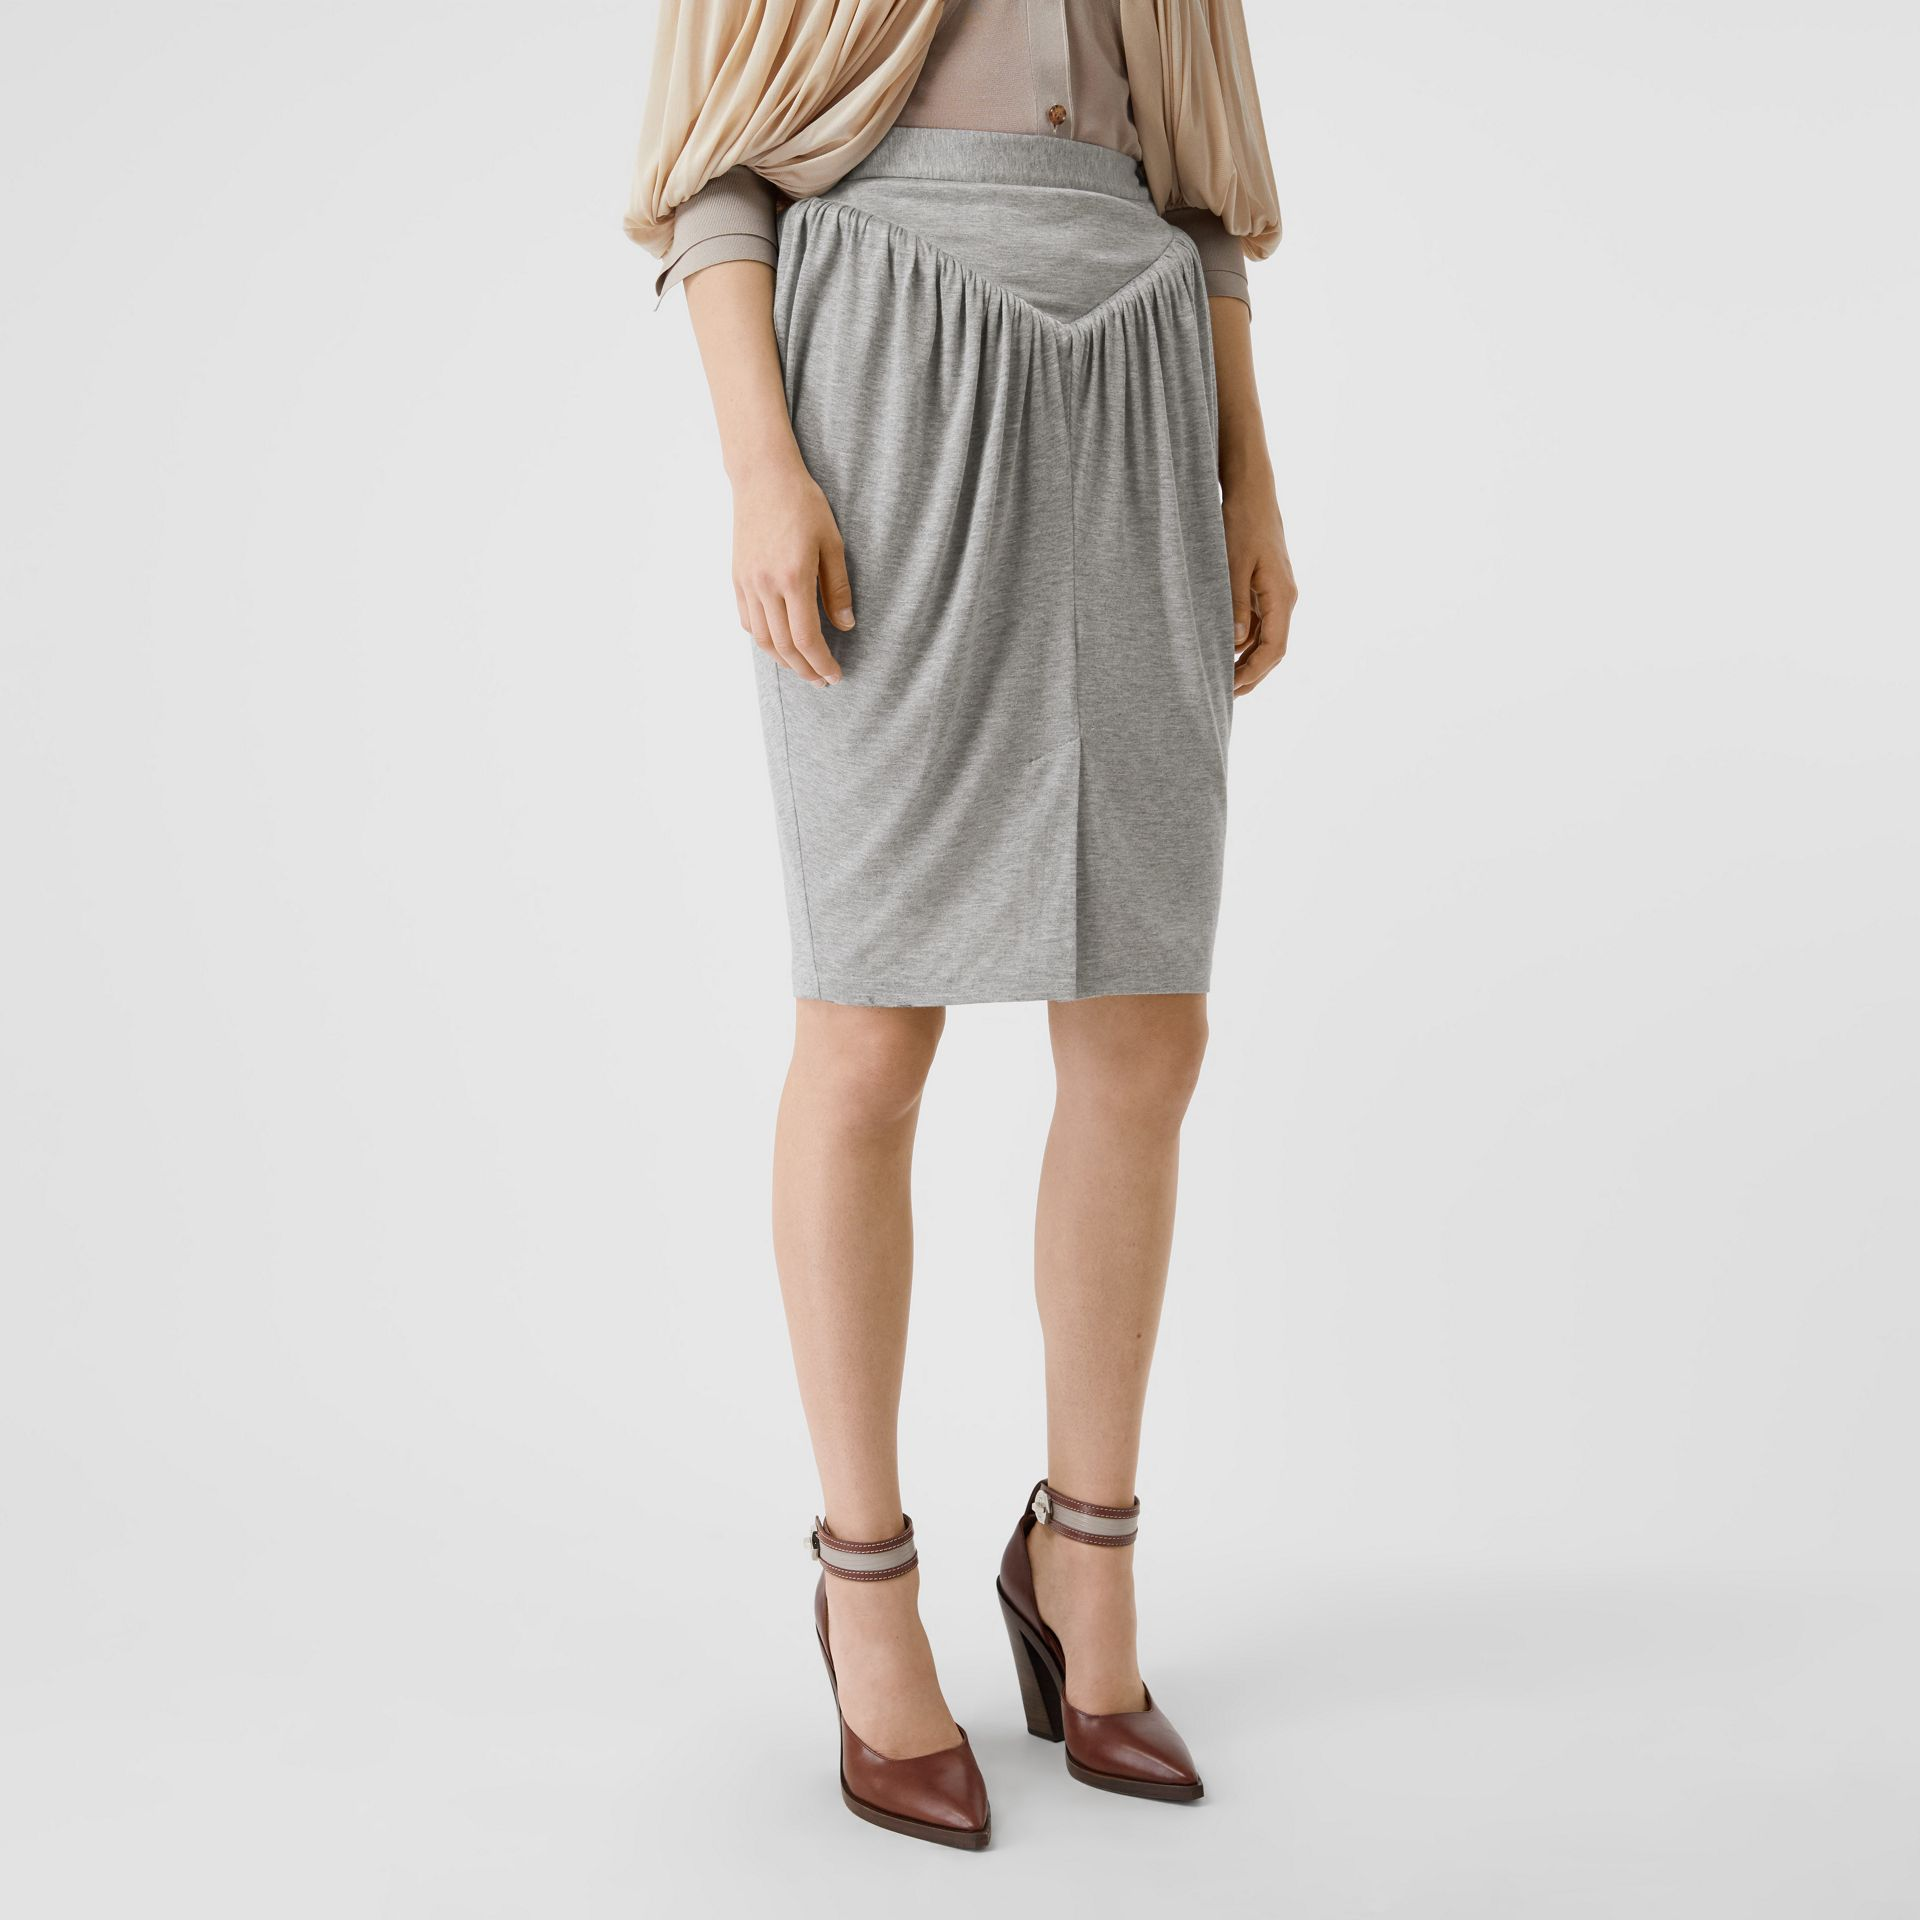 Gathered Jersey Sculptural Skirt in Pewter Melange - Women | Burberry United States - gallery image 4